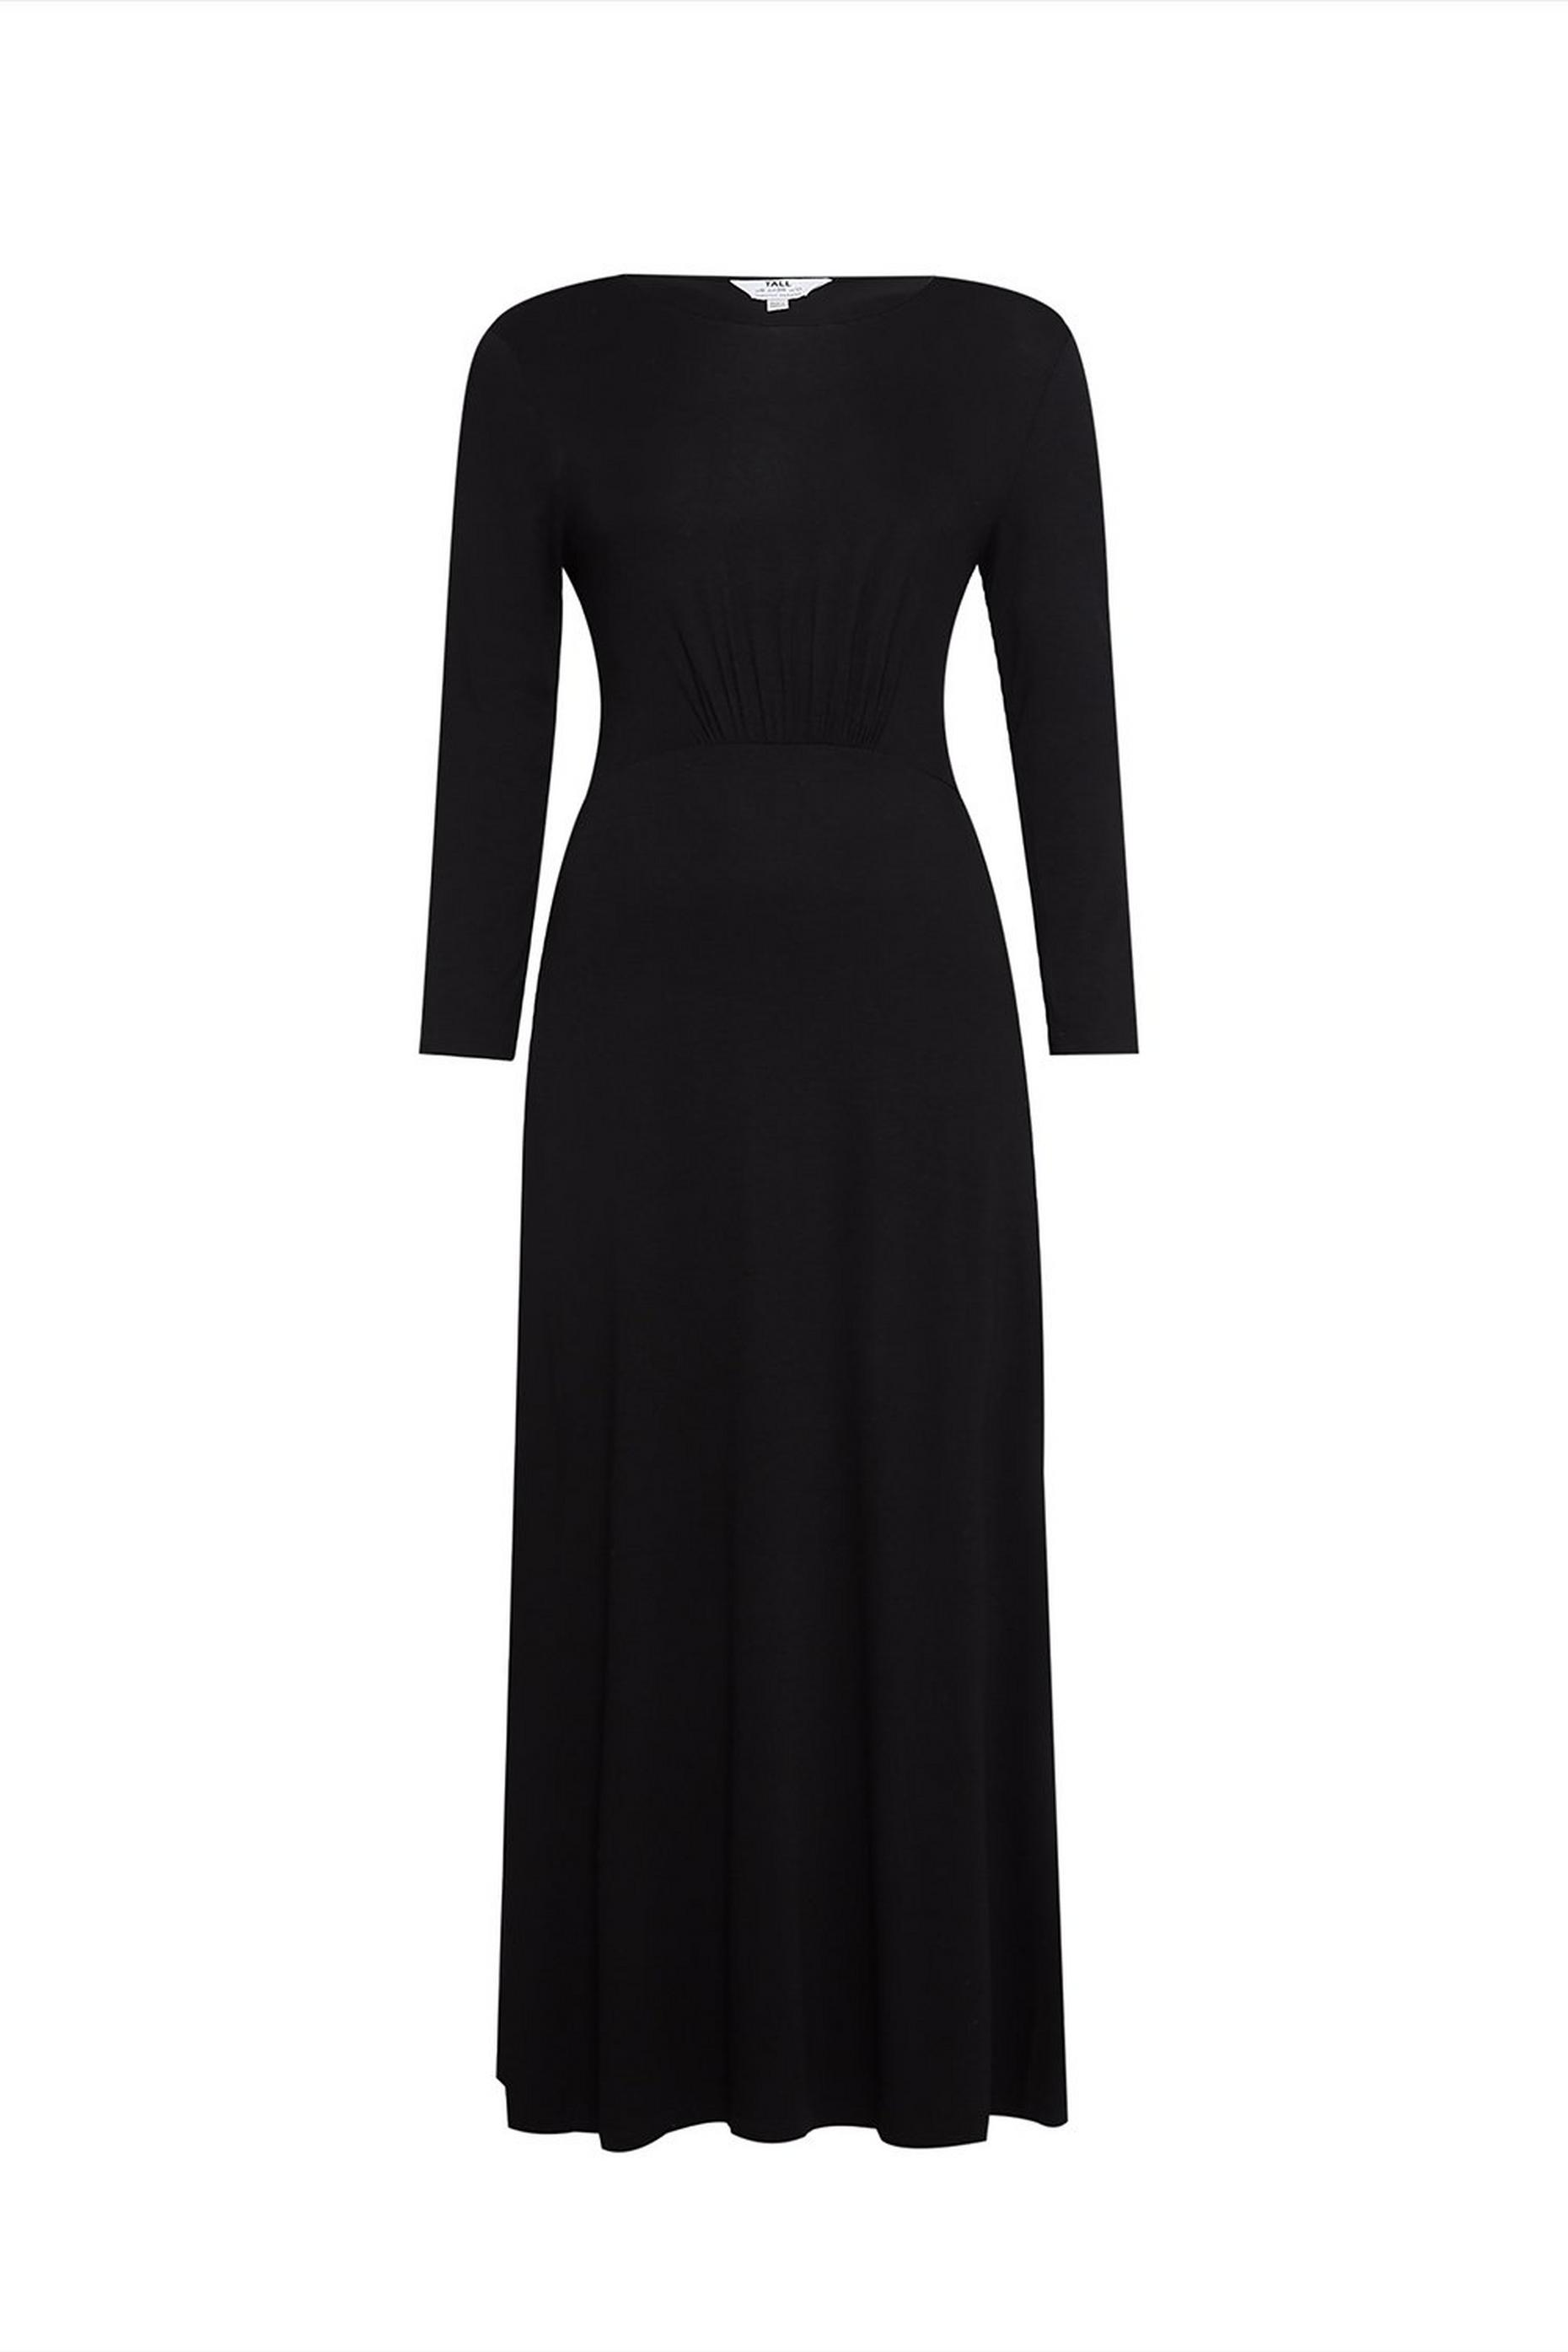 Tall BlackThree Quarter Sleeve Maxi Dress